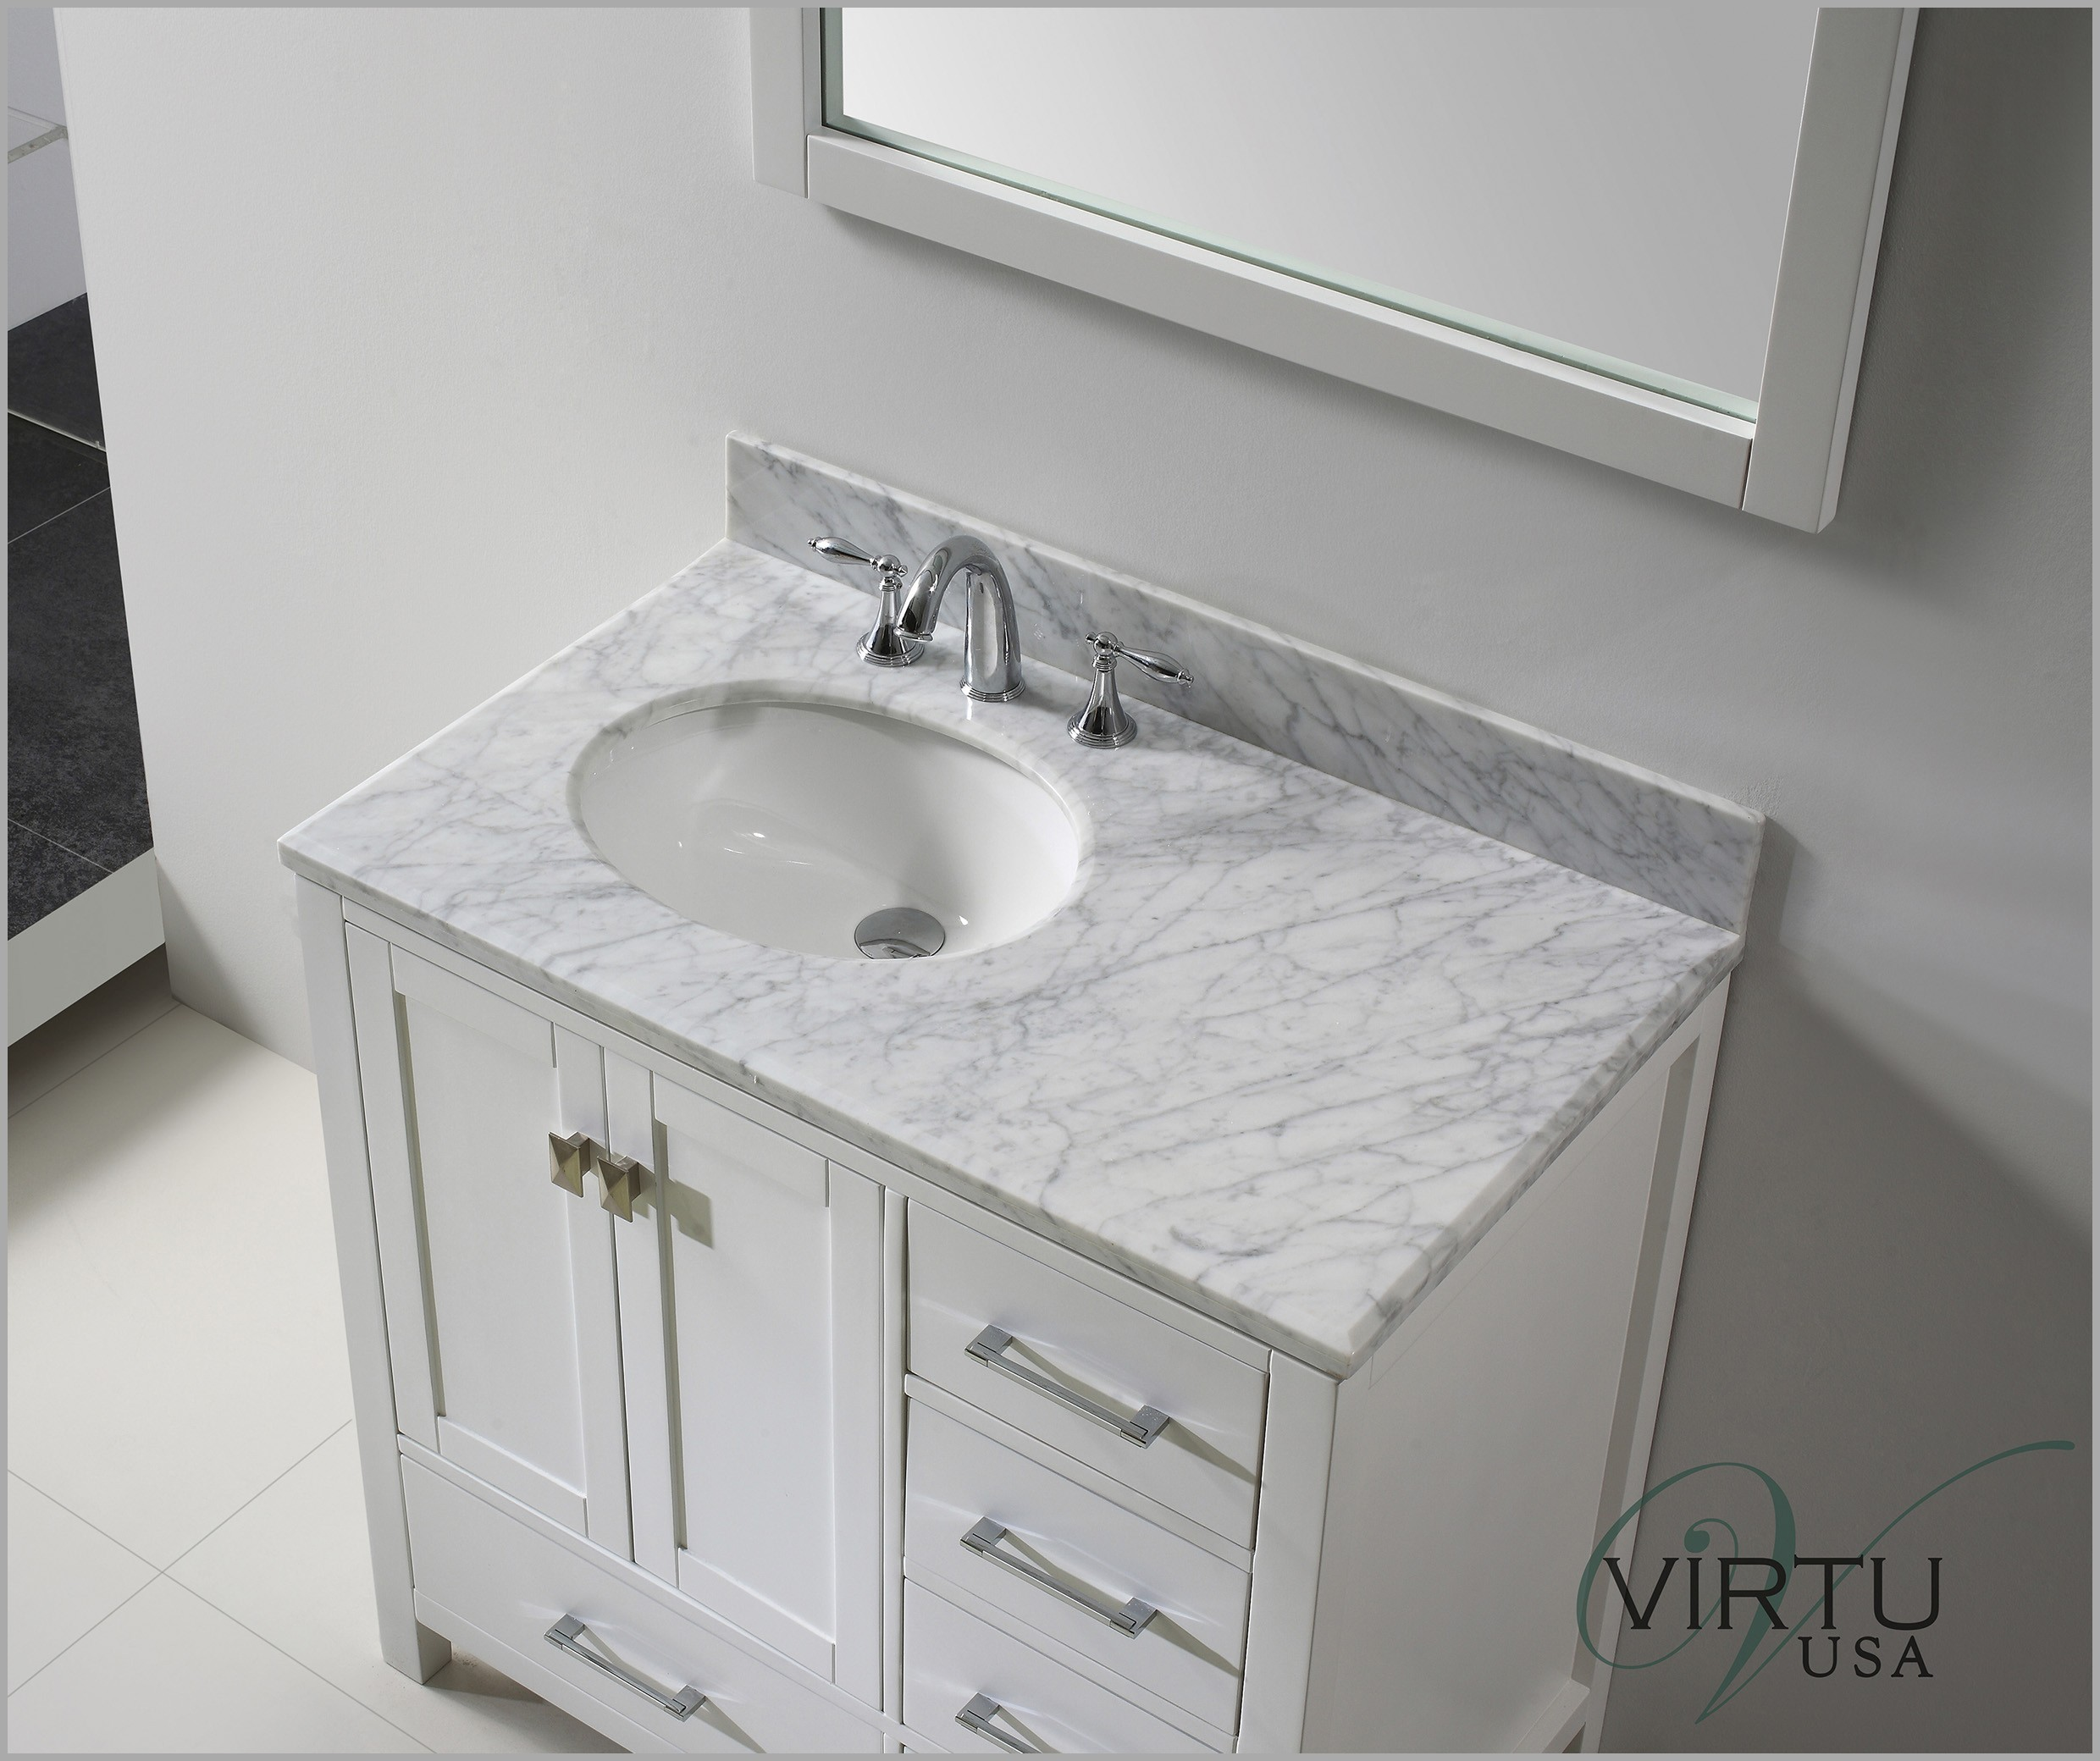 best of bathroom vanity 18 deep model bathroom design ideas rh bridgeportbenedumfestival com